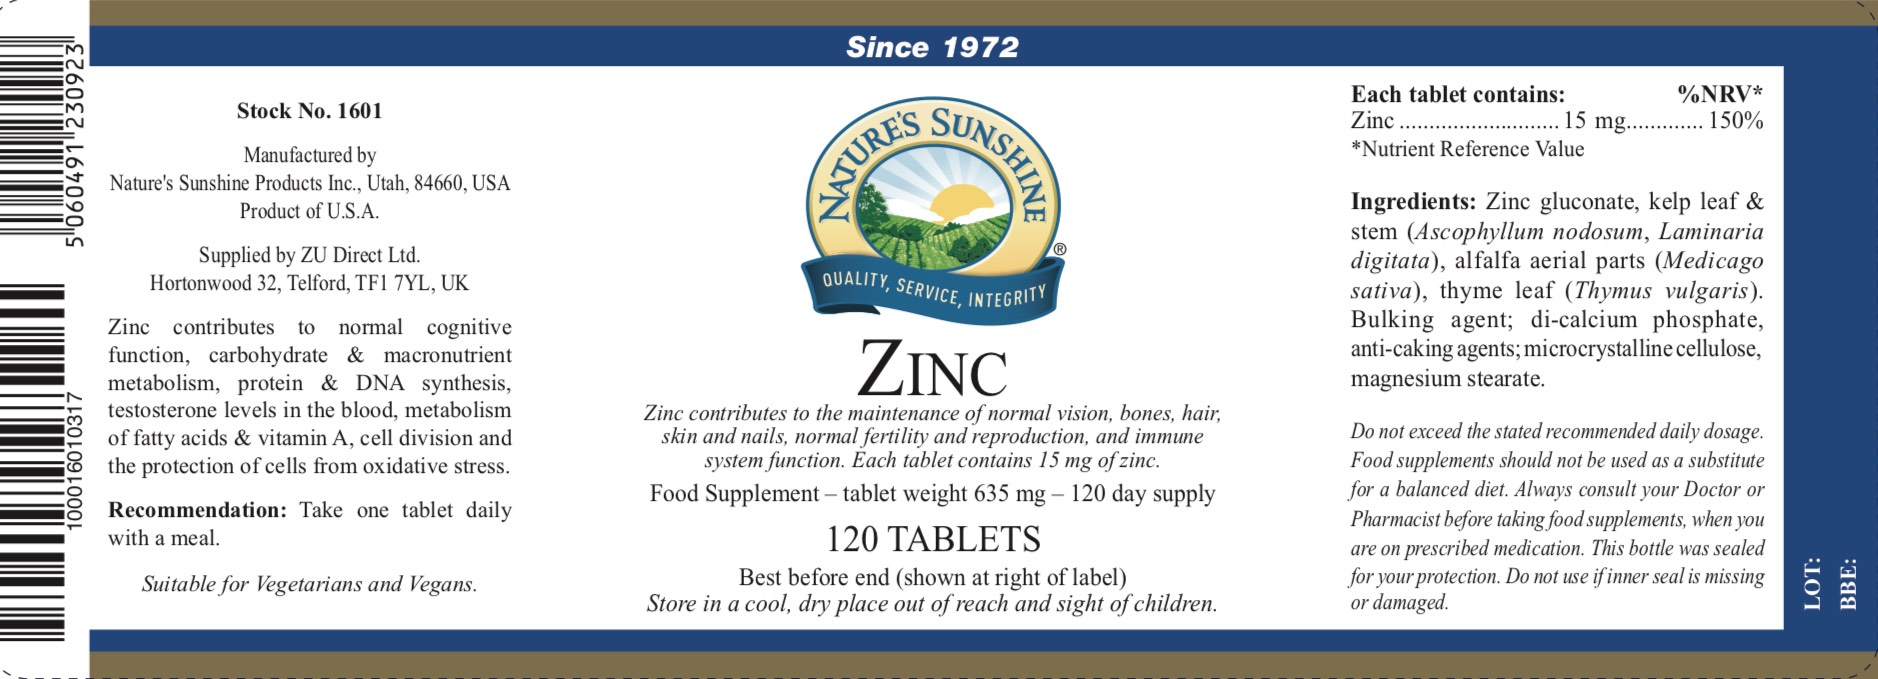 Nature's Sunshine - Zinc - Label